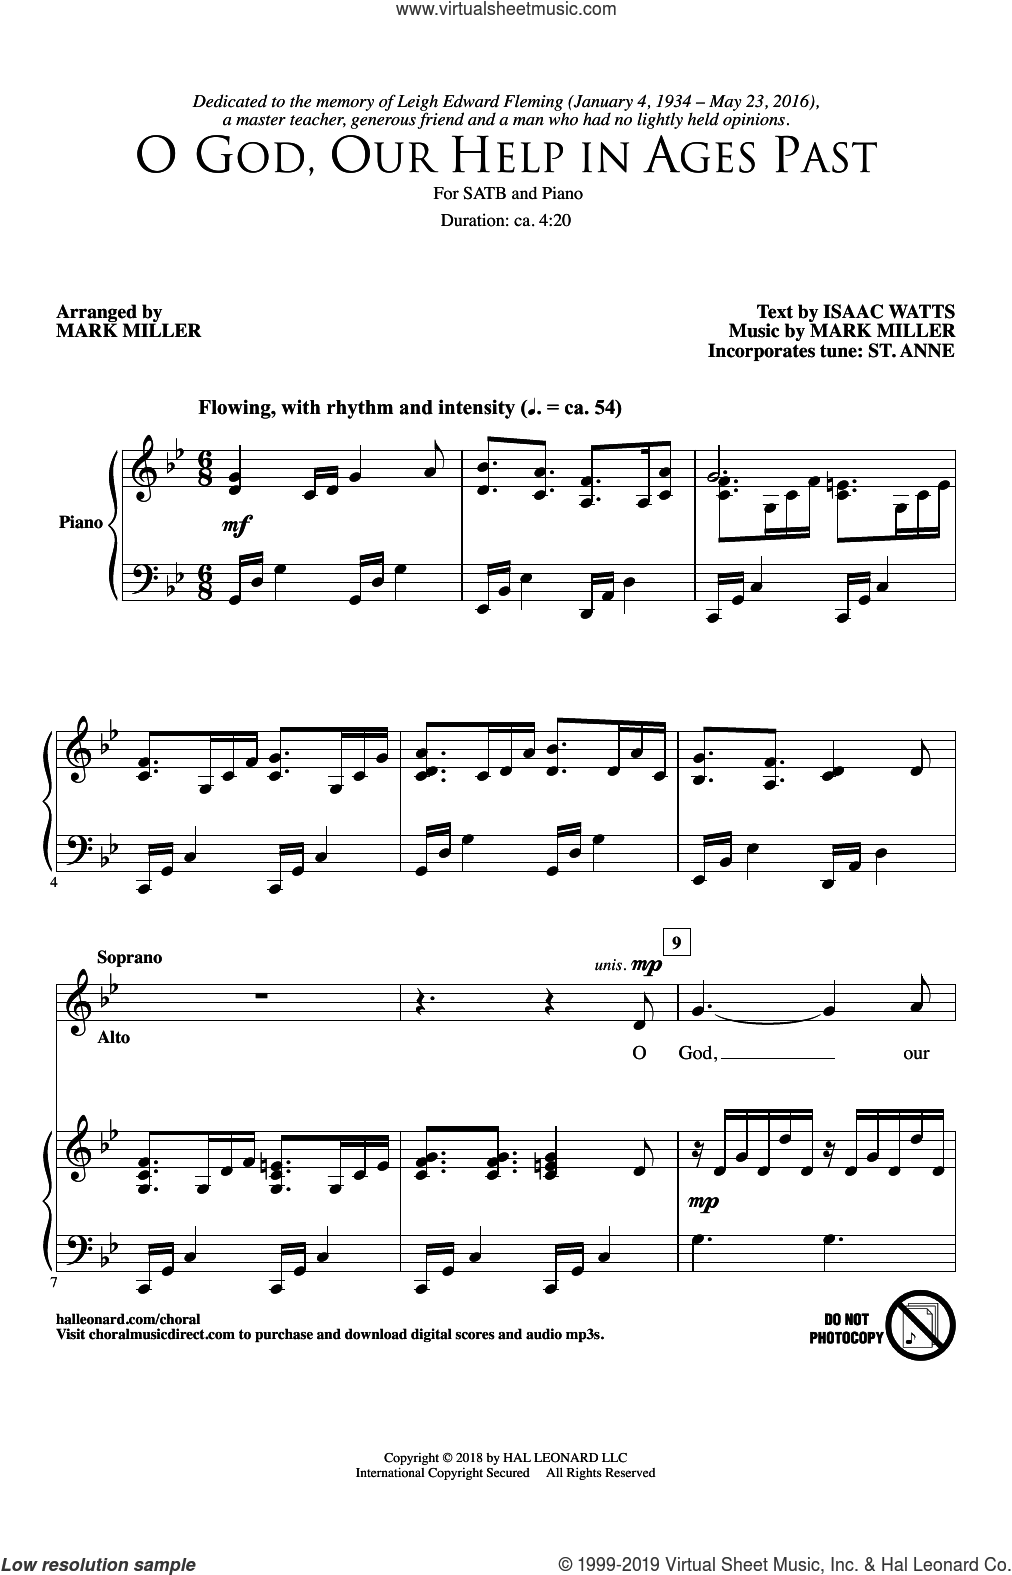 O God, Our Help In Ages Past sheet music for choir (SATB: soprano, alto, tenor, bass) by Isaac Watts and Mark Miller, intermediate skill level